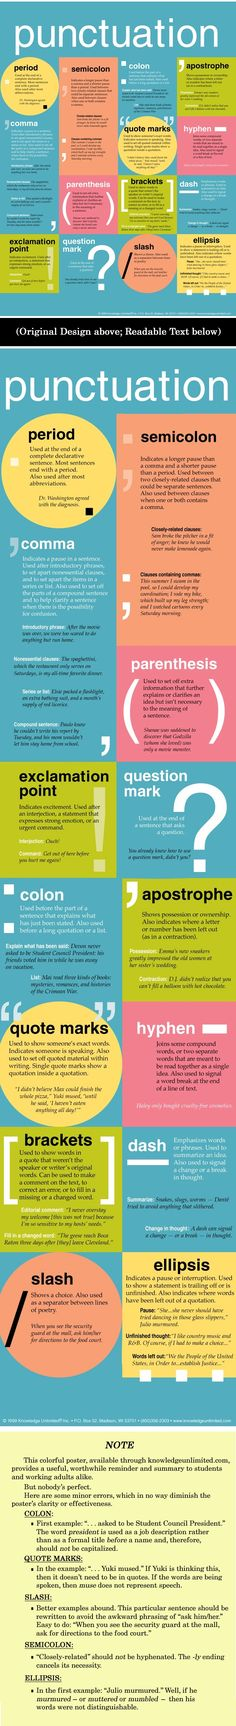 the basics of punctutation (poster from http://www.thekustore.com/kucatalog.cgi/7124P)